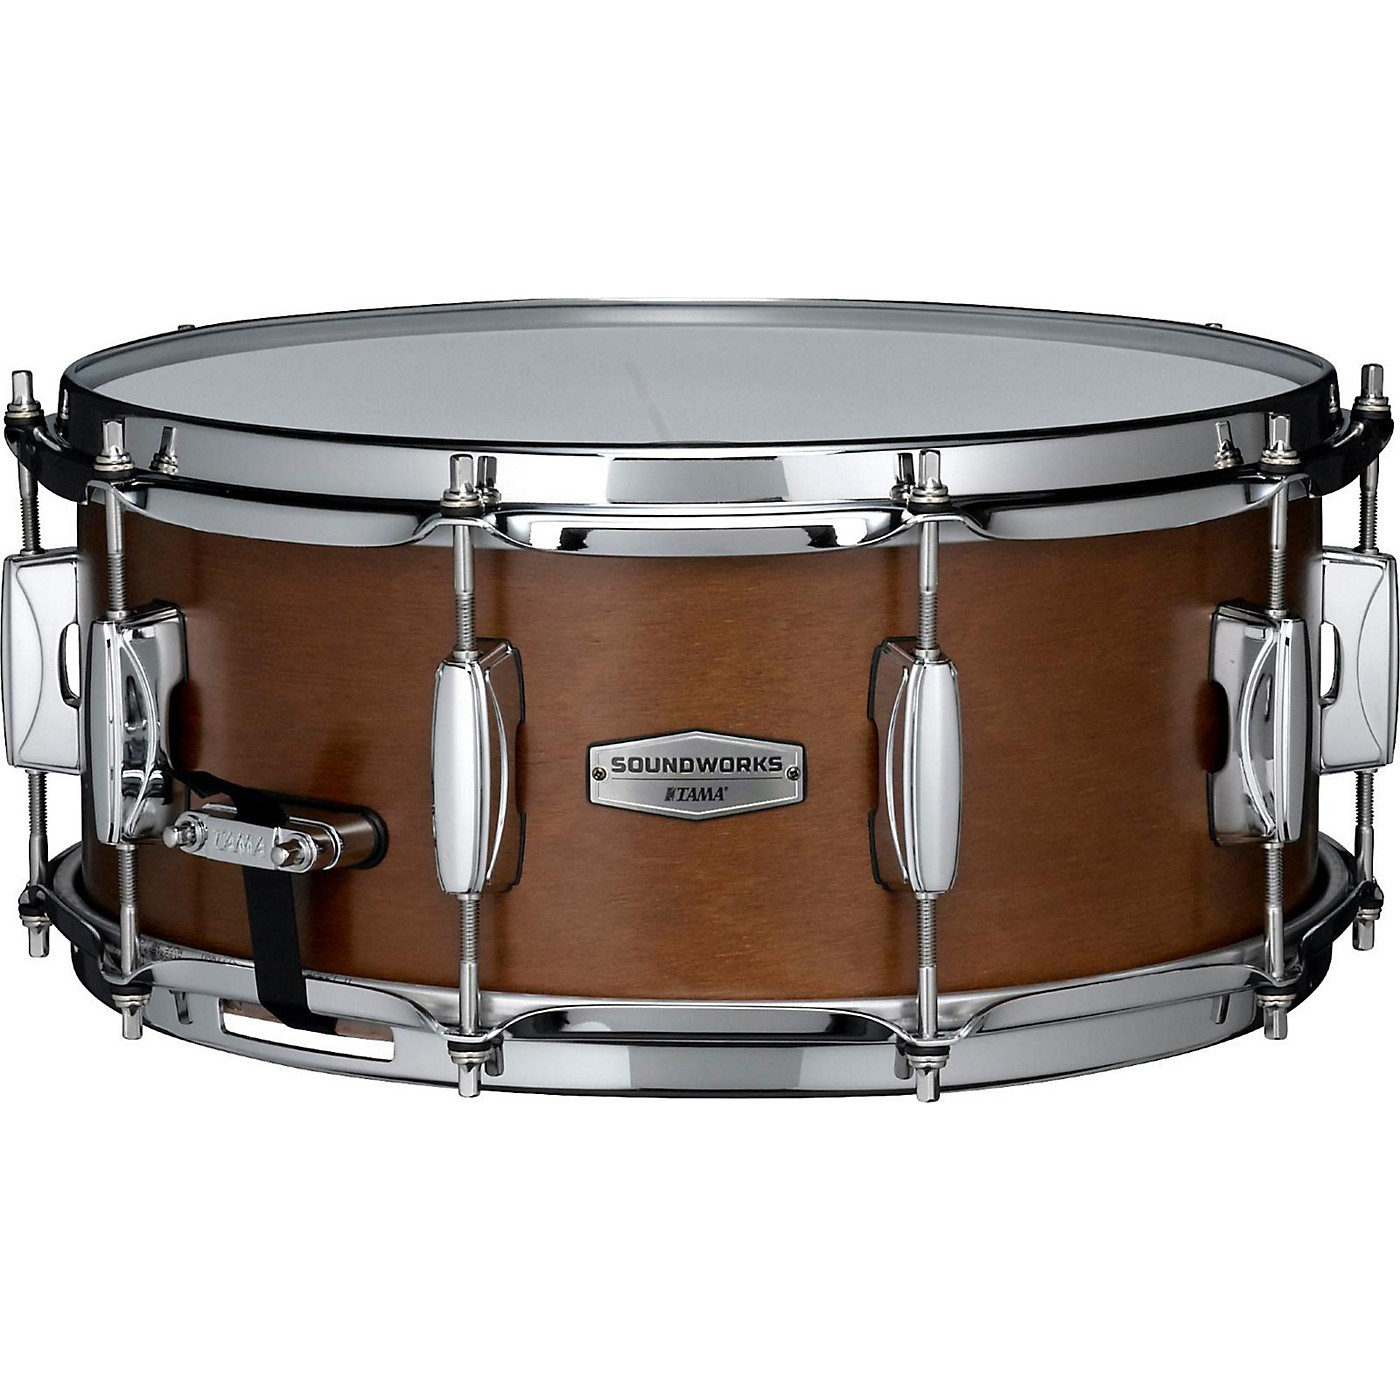 TAMA Soundworks Kapur Snare Drum thumbnail